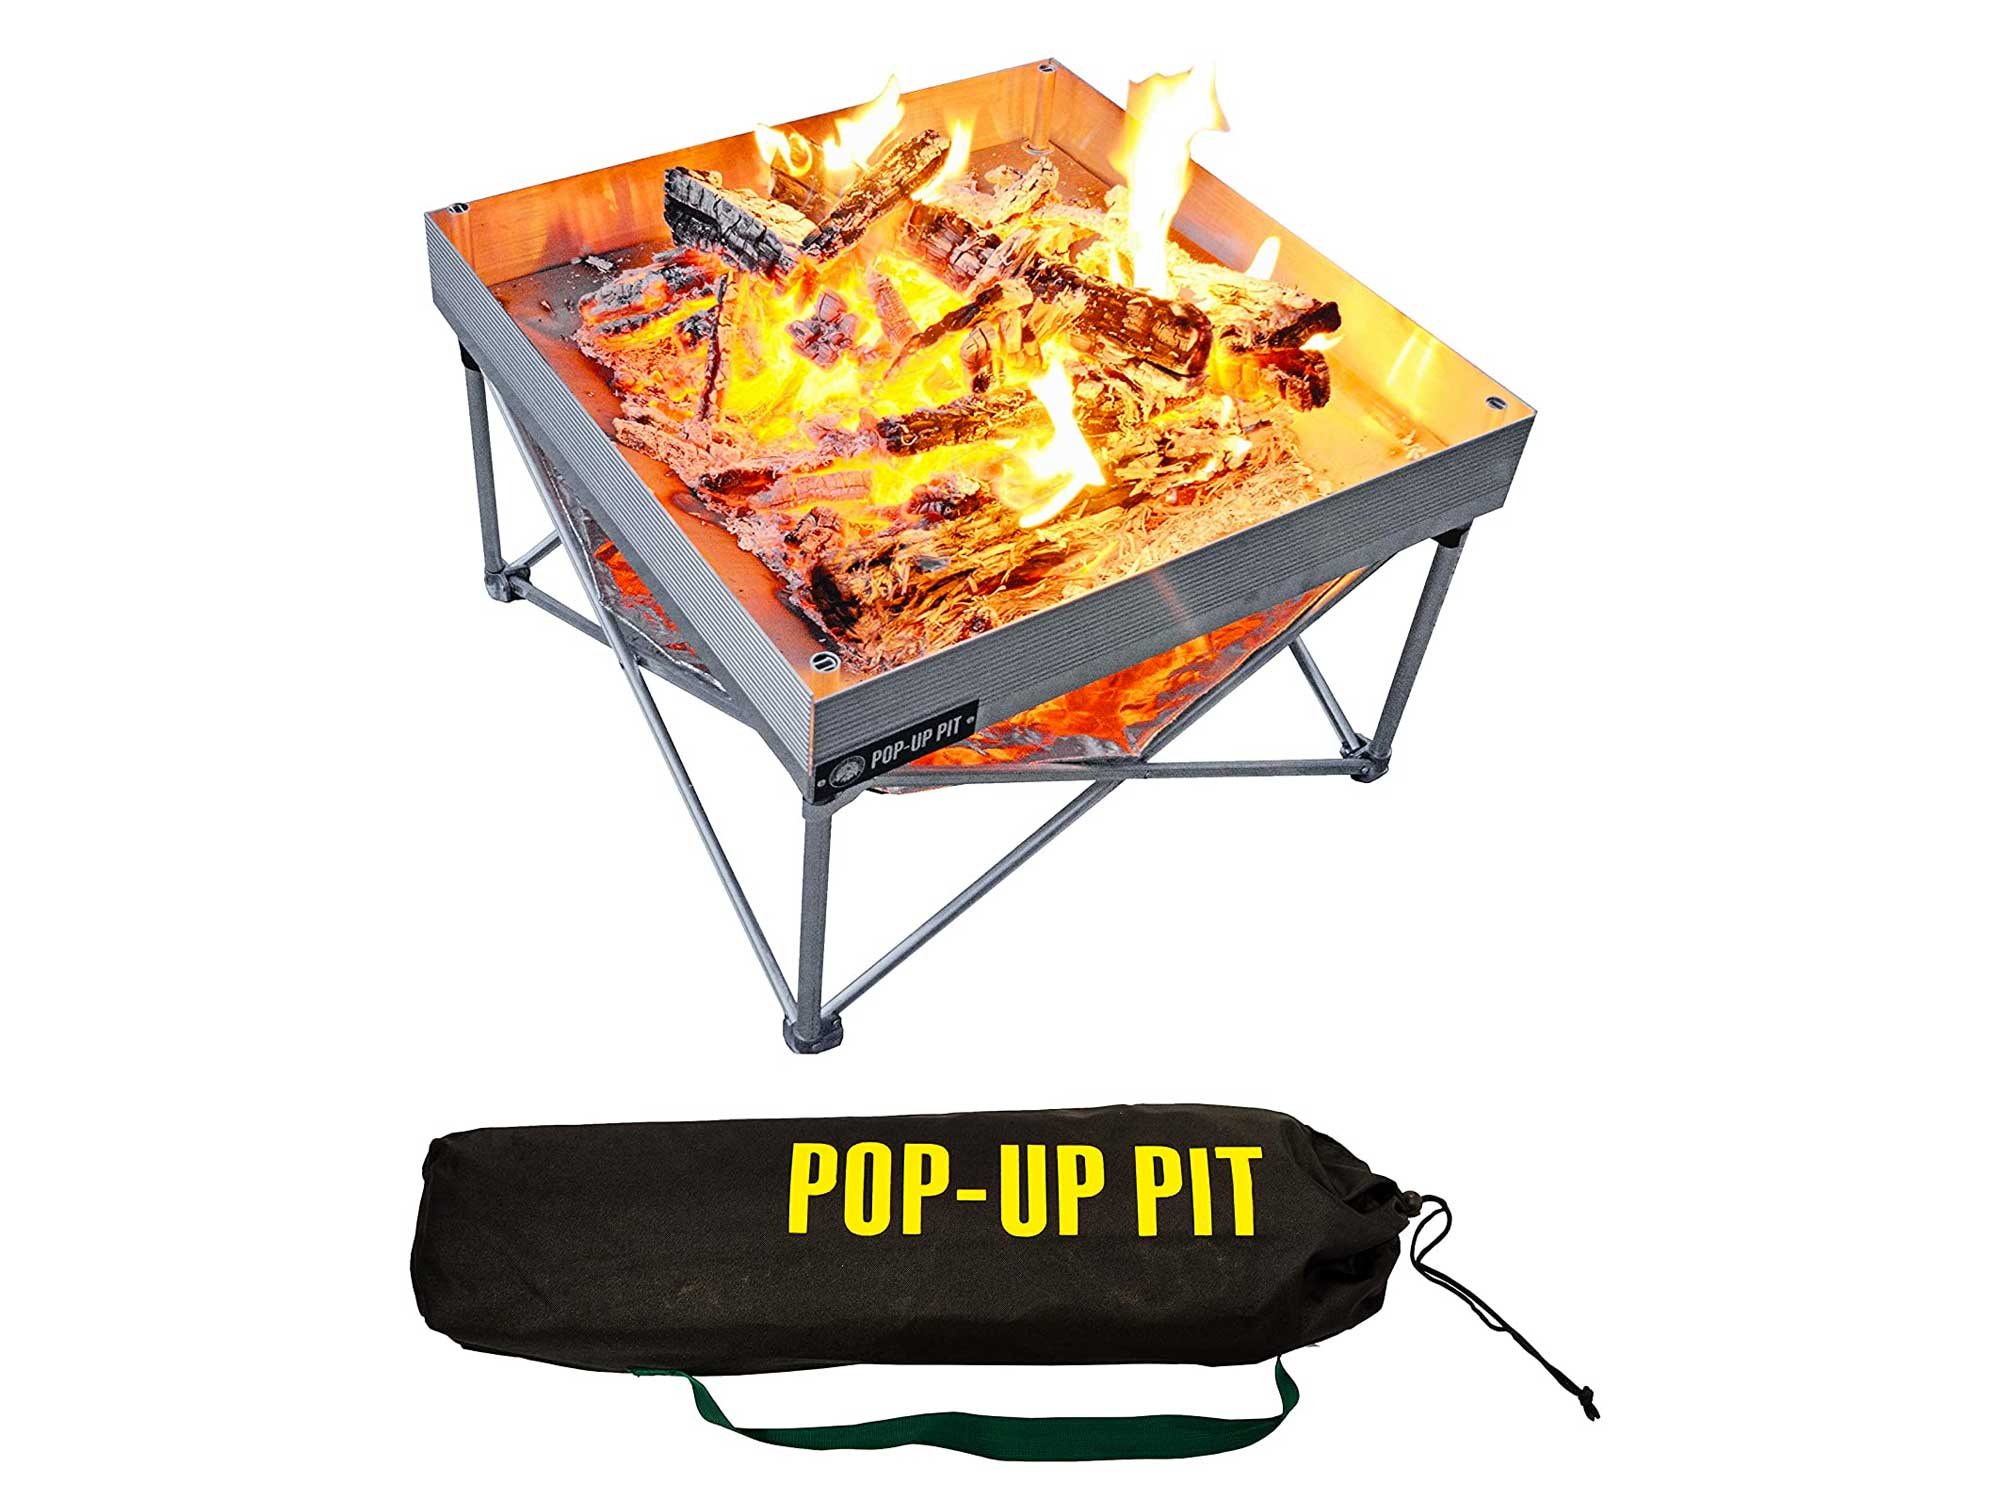 Pop-Up Fire Pit, Portable and Lightweight